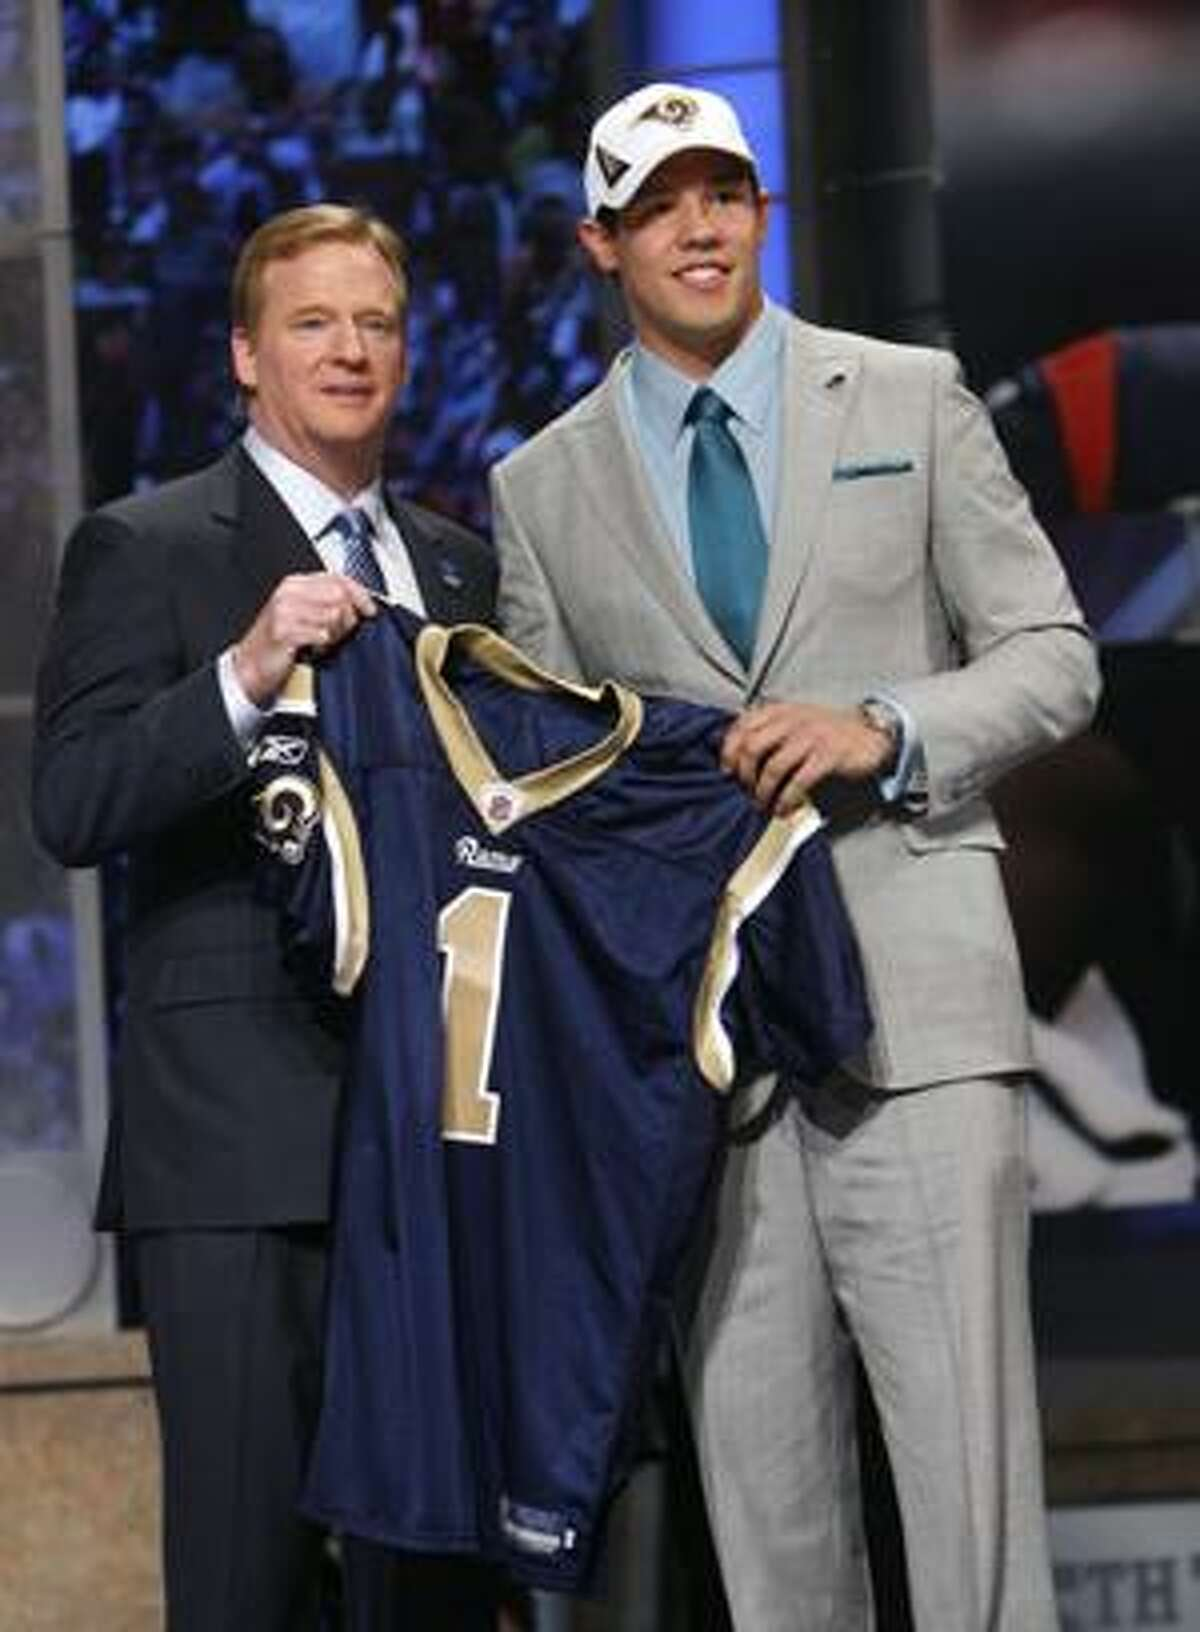 Oklahoma quarterback Sam Bradford, right, holds up a jersey with NFL commissioner Roger Goodell after he was selected as the No. 1 overall pick in the first round of the NFL Draft by the St. Louis Rams Thursday, April 22, 2010, at Radio City Music Hall in New York. (AP Photo/Jason DeCrow)